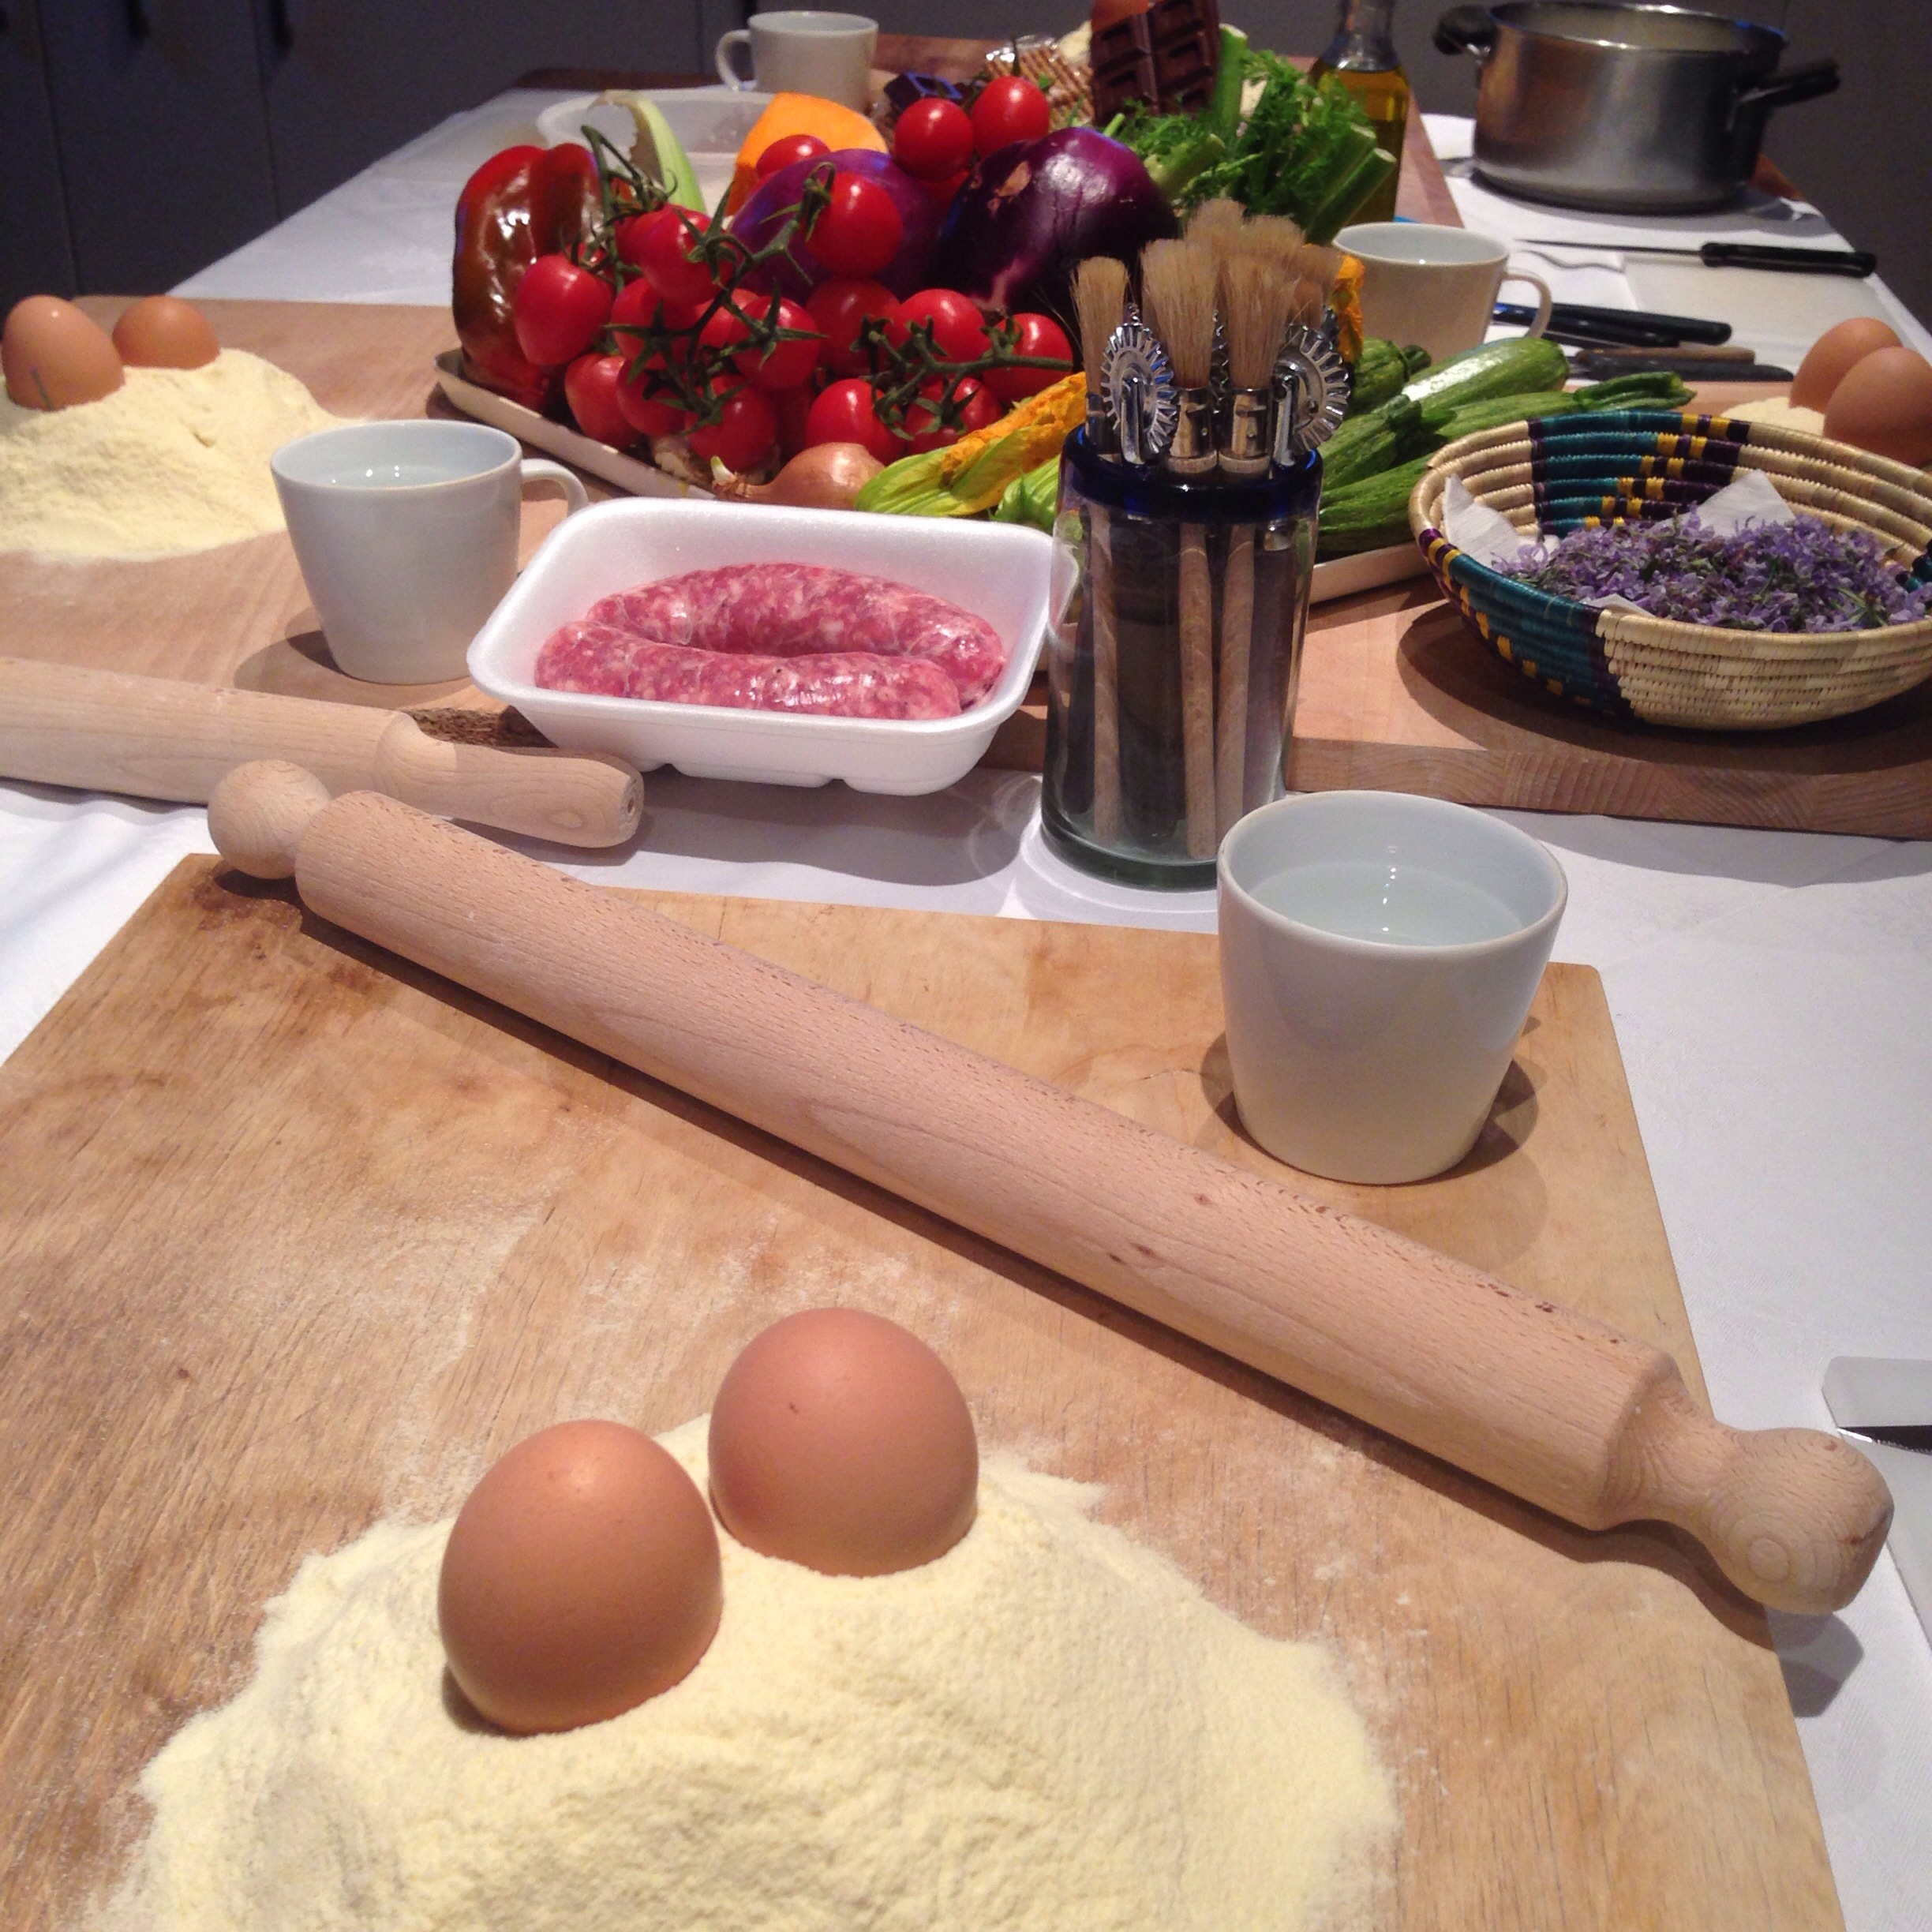 Poderinchianti cooking classes are just the way to spend an evening!